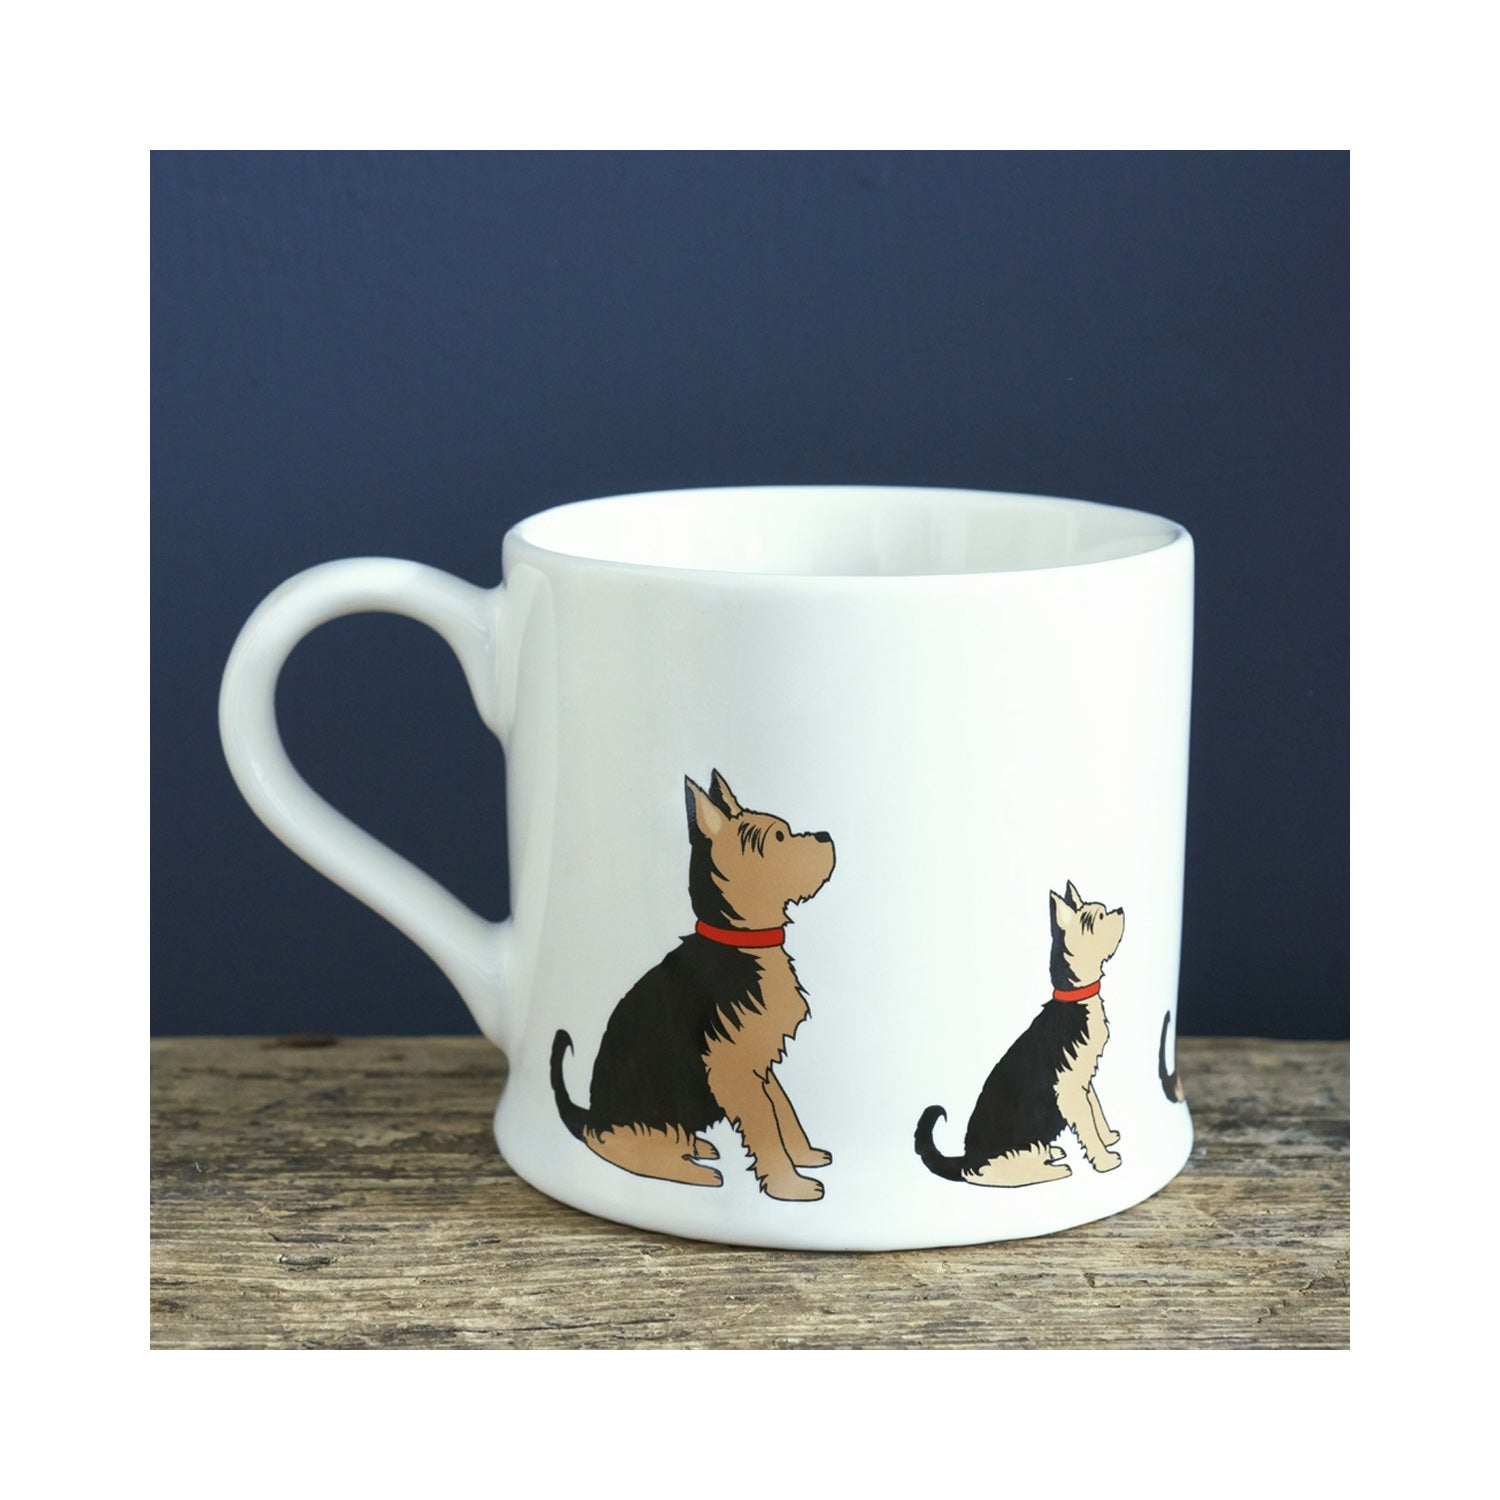 Dog Lover Gifts available at Dog Krazy Gifts - Ella The Yorkshire Terrier Mug - part of the Sweet William range available from Dog Krazy Gifts